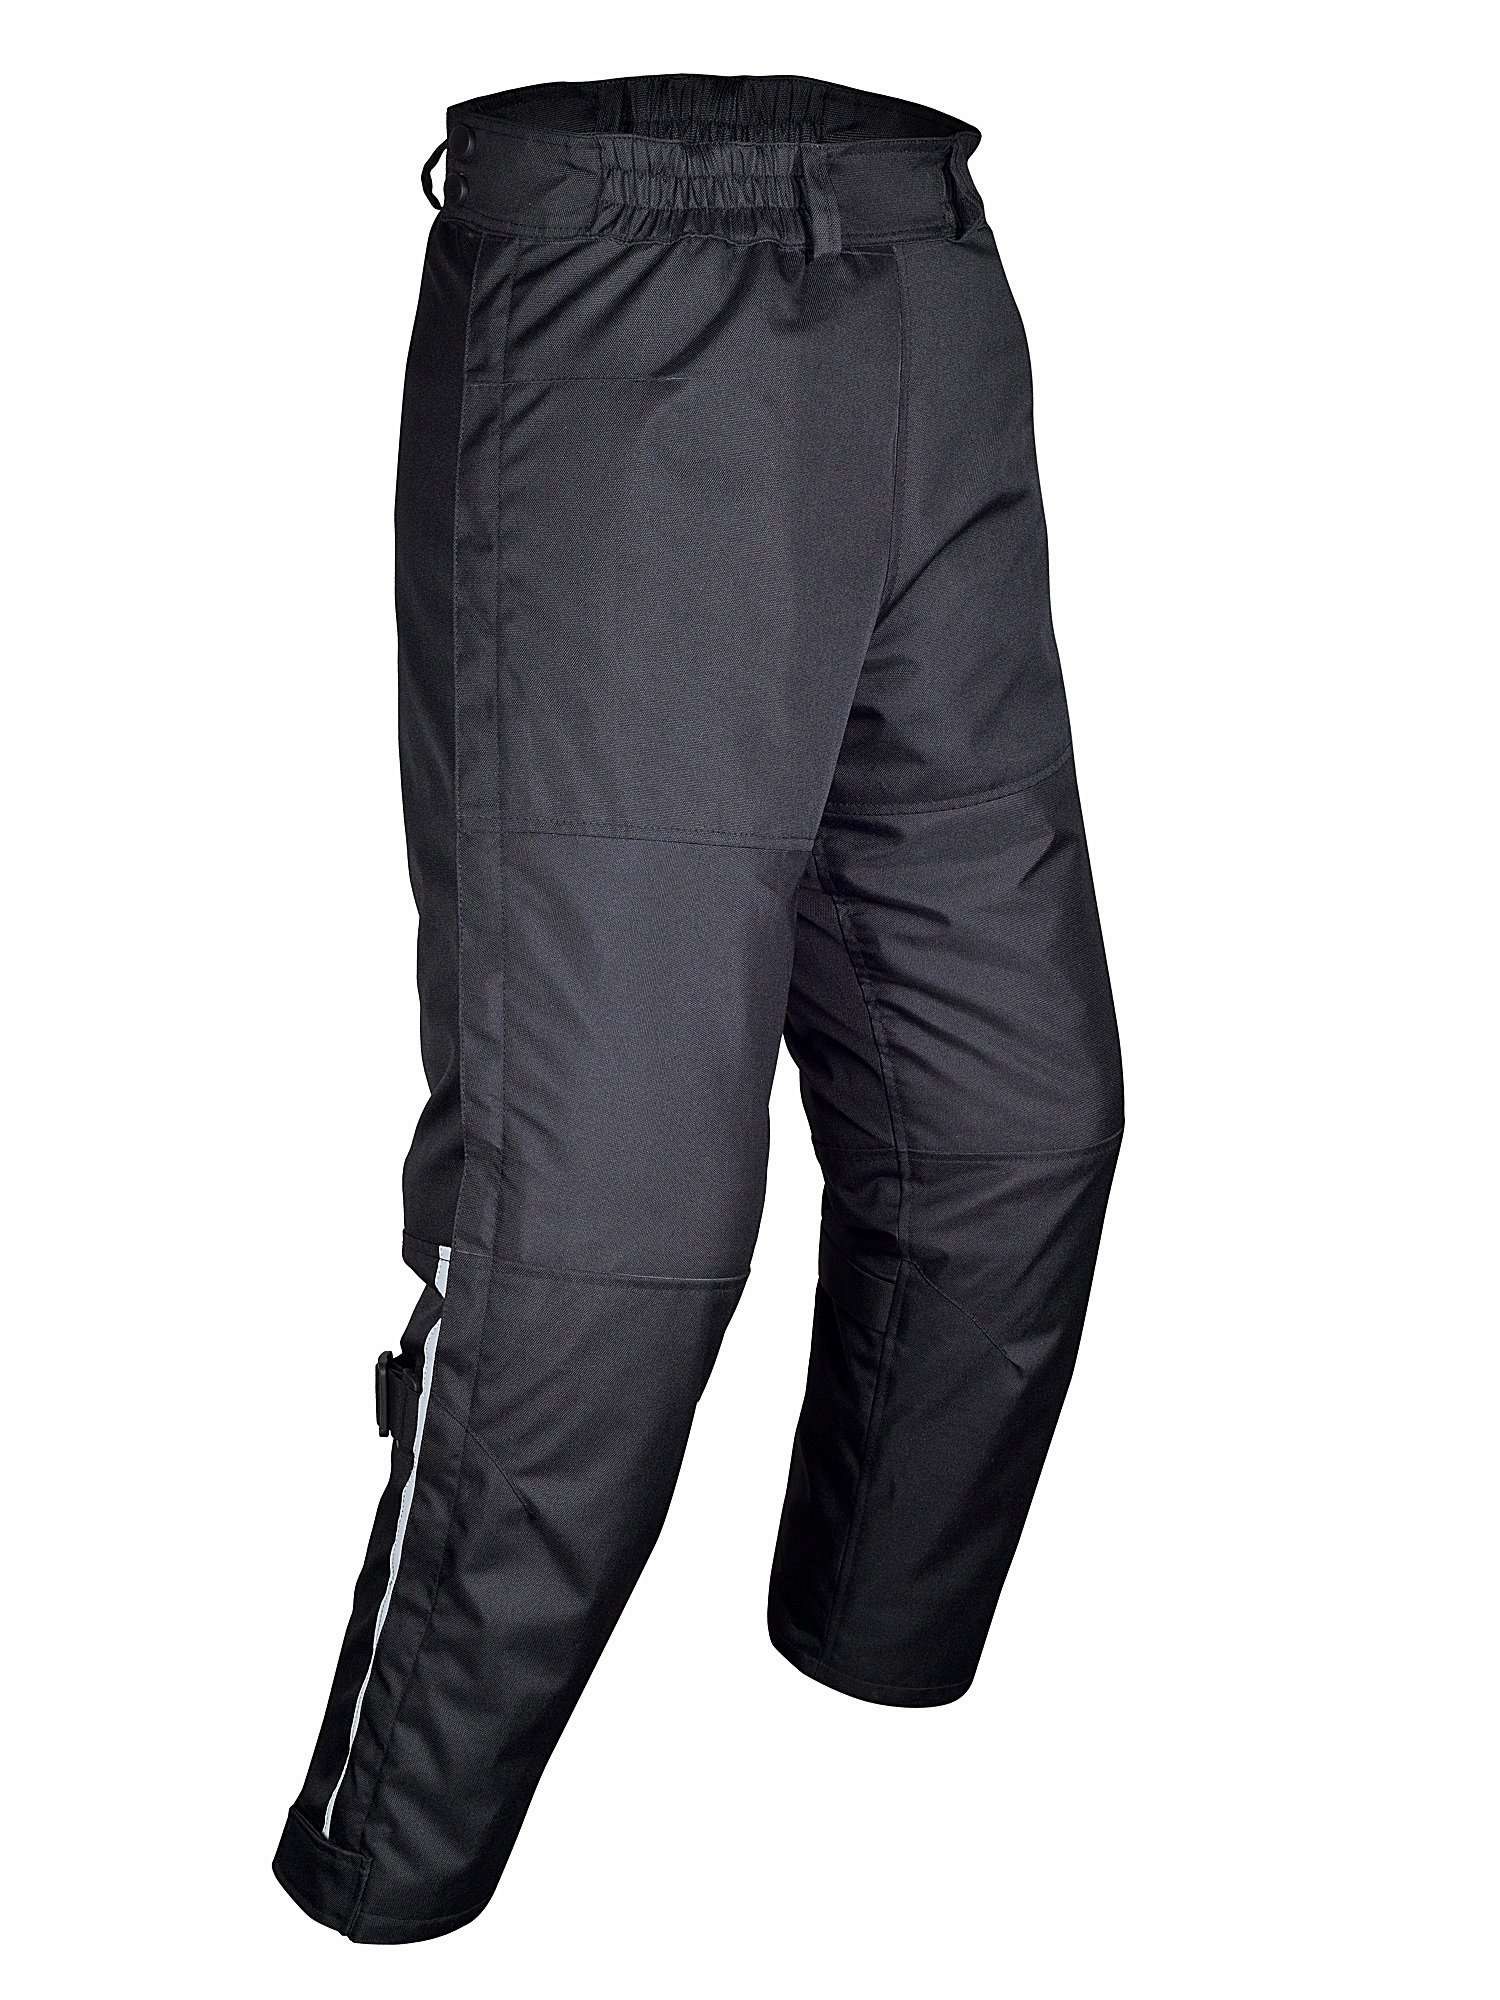 Motorcycle-Textile-Hawaii-Over-Pants-Waterproof-with-Full-side-Zipper